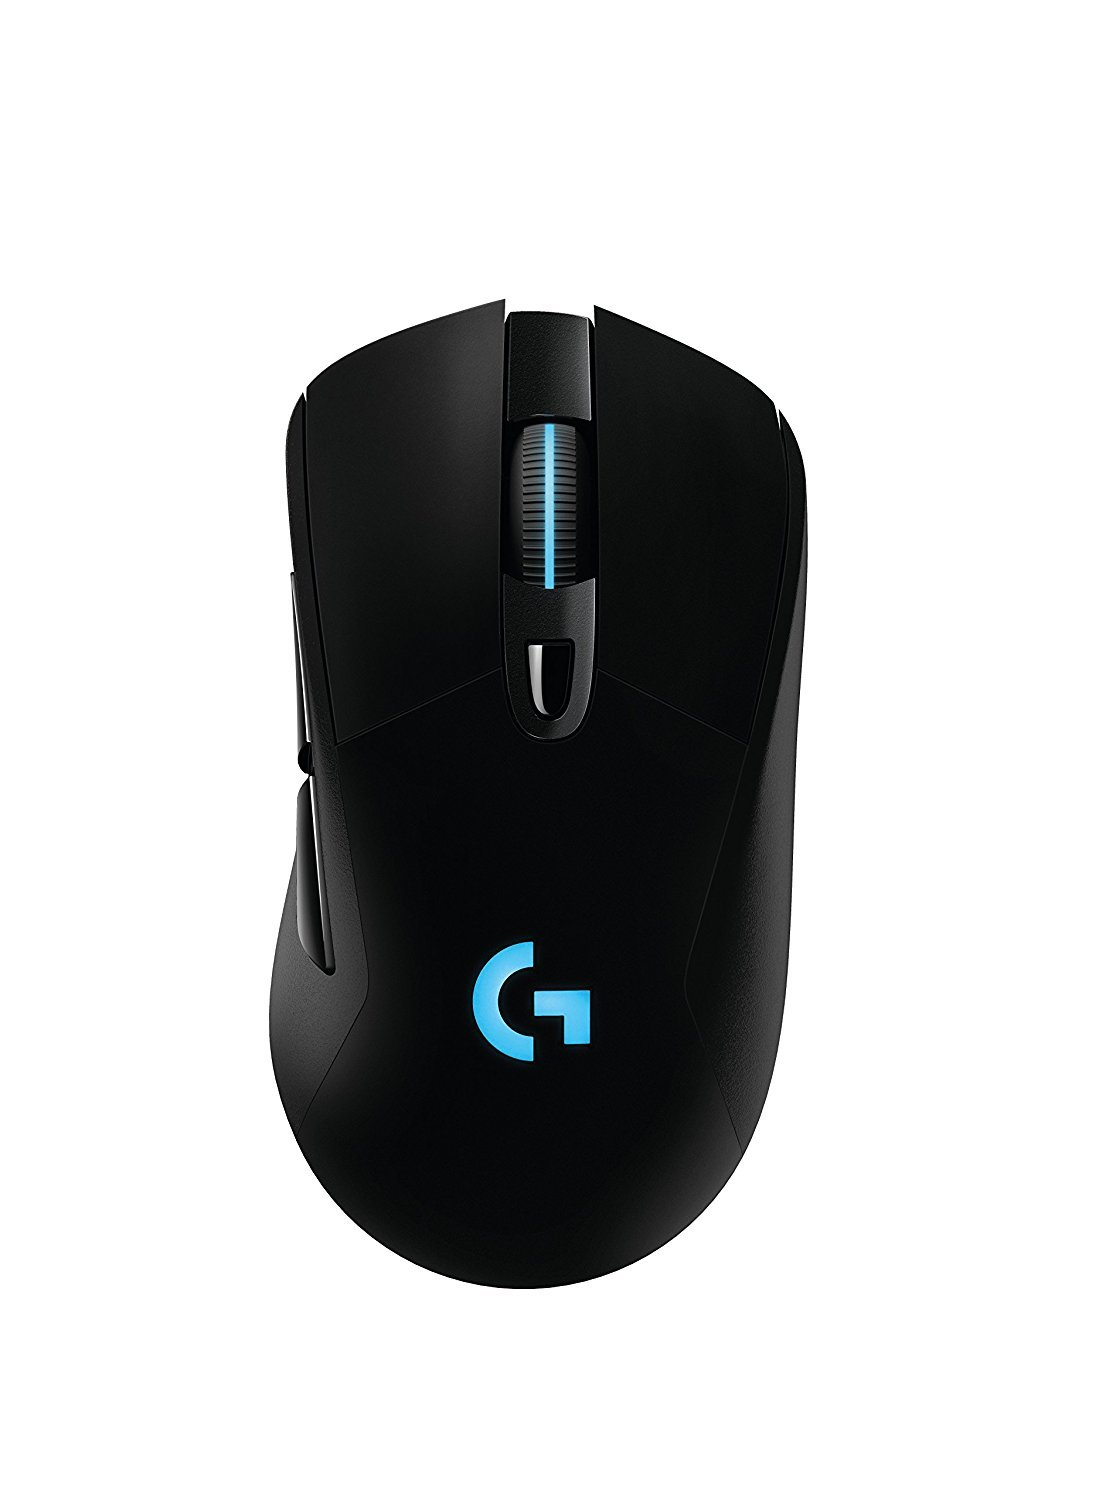 Logitech G703 LIGHTSPEED Gaming Mouse with POWERPLAY Wireless Charging Compatibility, Black , Renewed